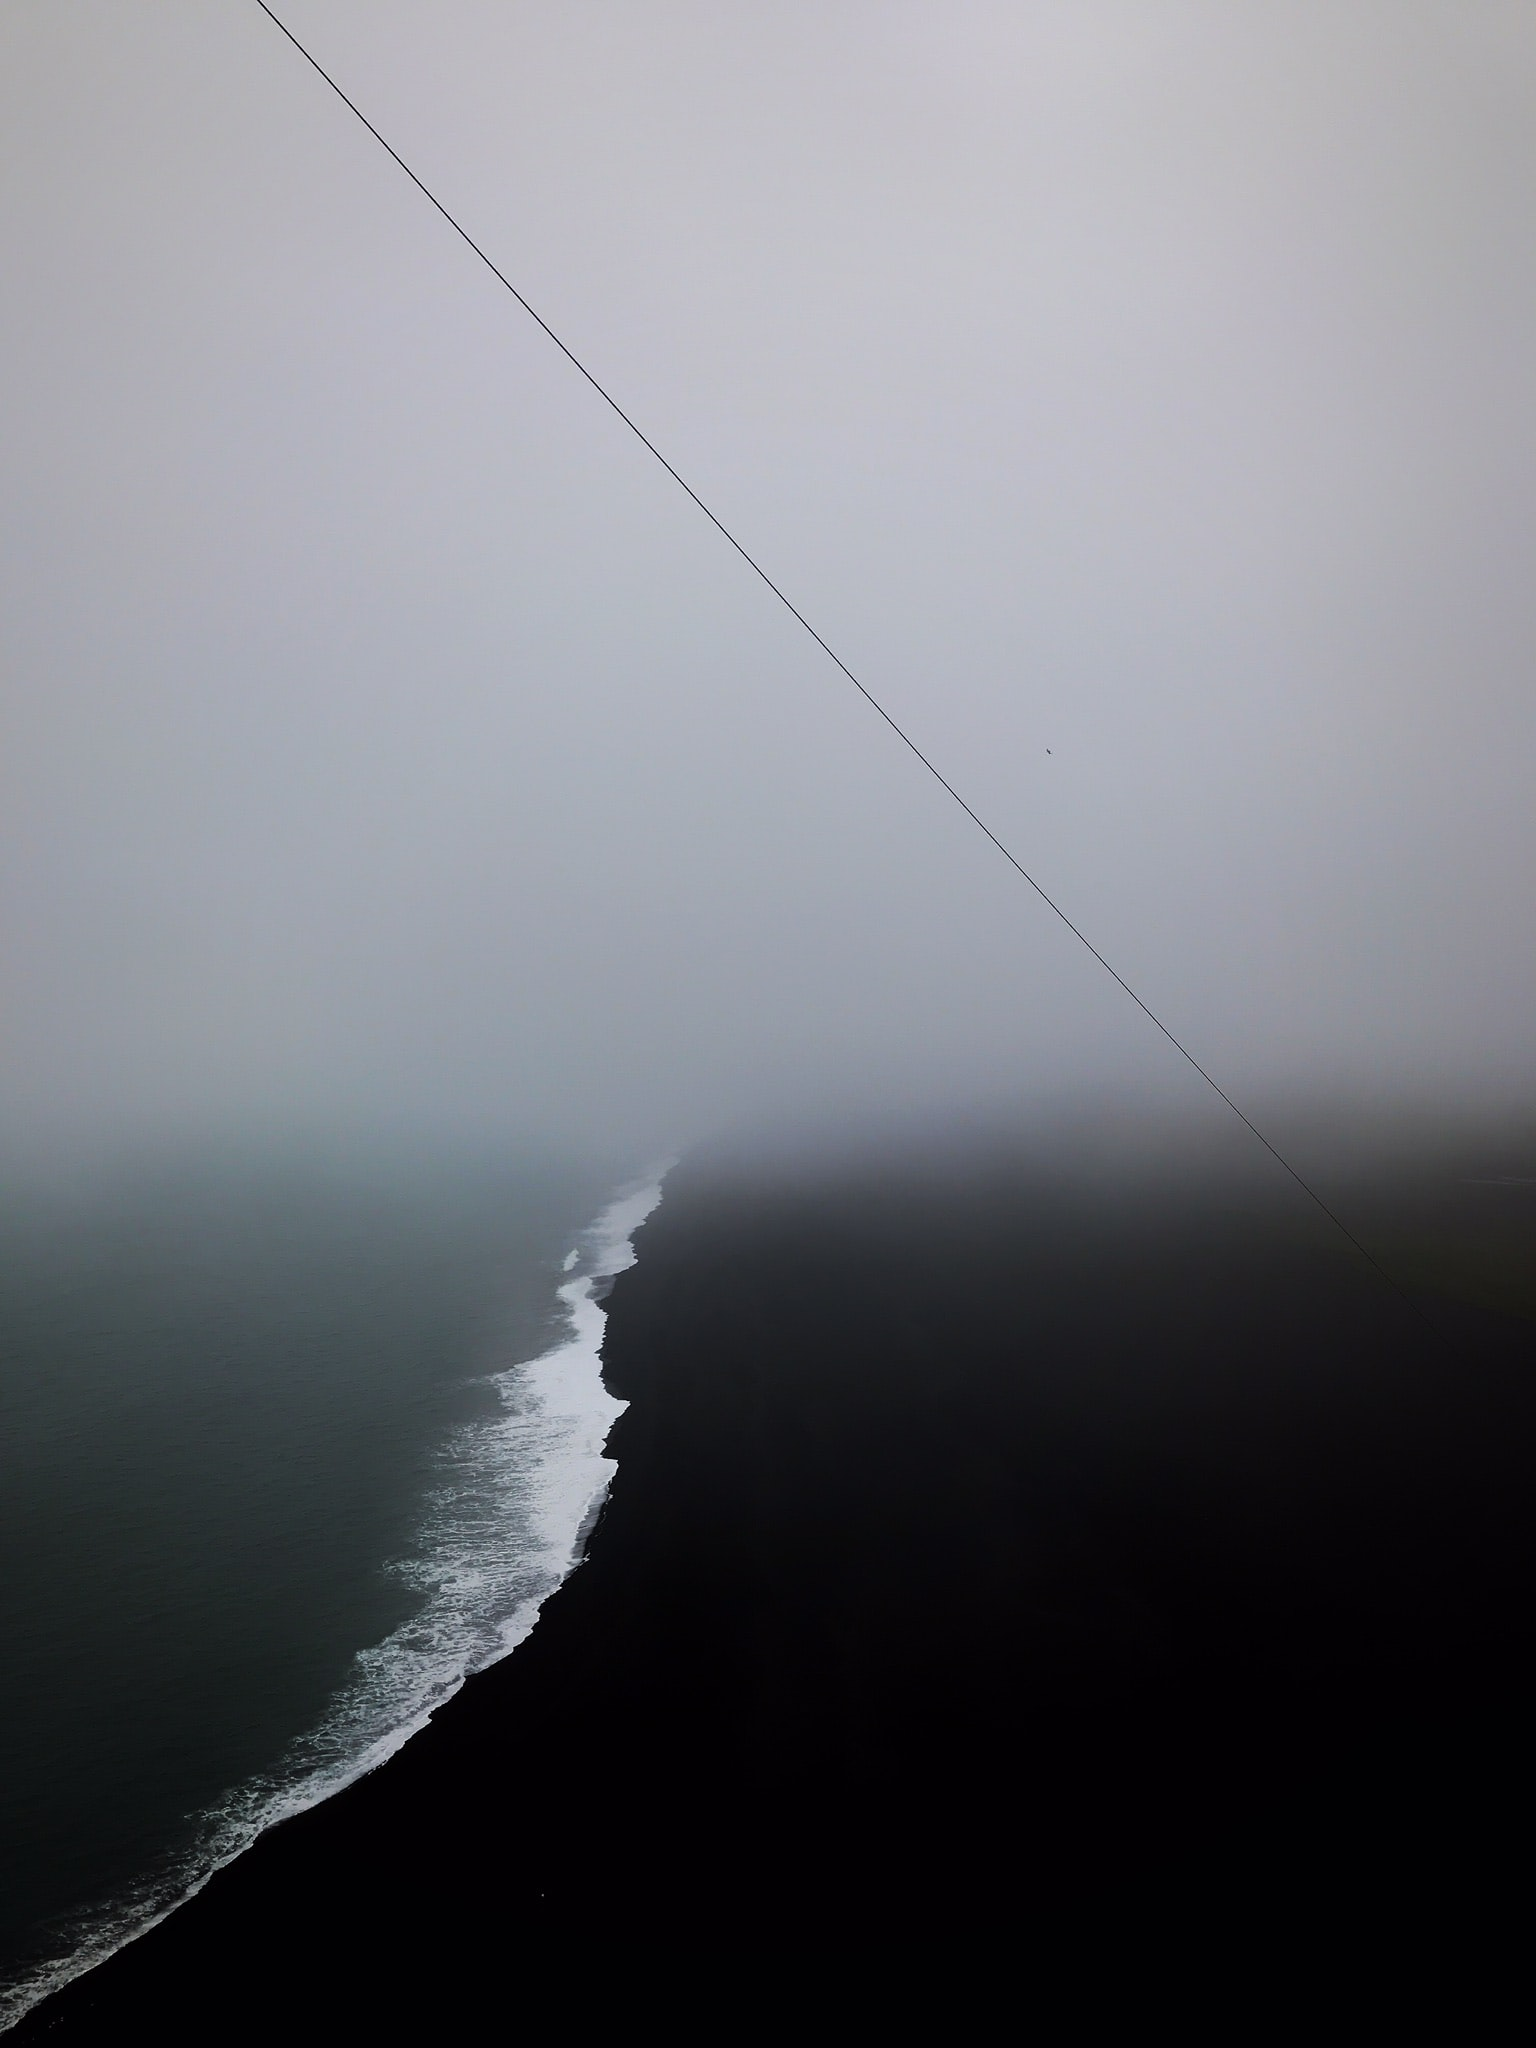 aerial view photography of body of water surrounded by fogs